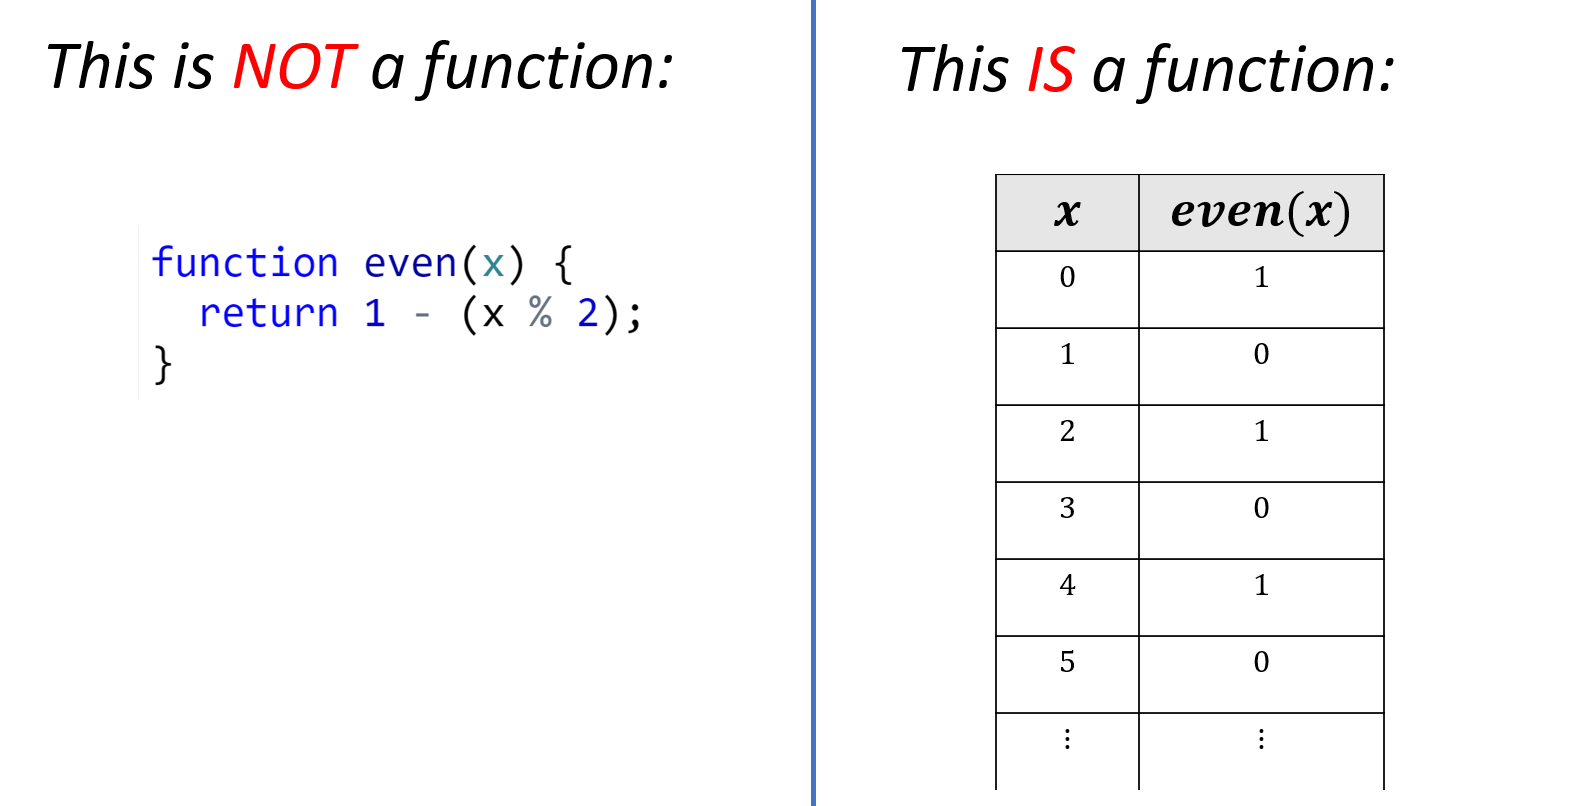 2.13: A function is a mapping of inputs to outputs. A program is a set of instructions on how to obtain an output given an input. A program computes a function, but it is not the same as a function, popular programming language terminology notwithstanding.